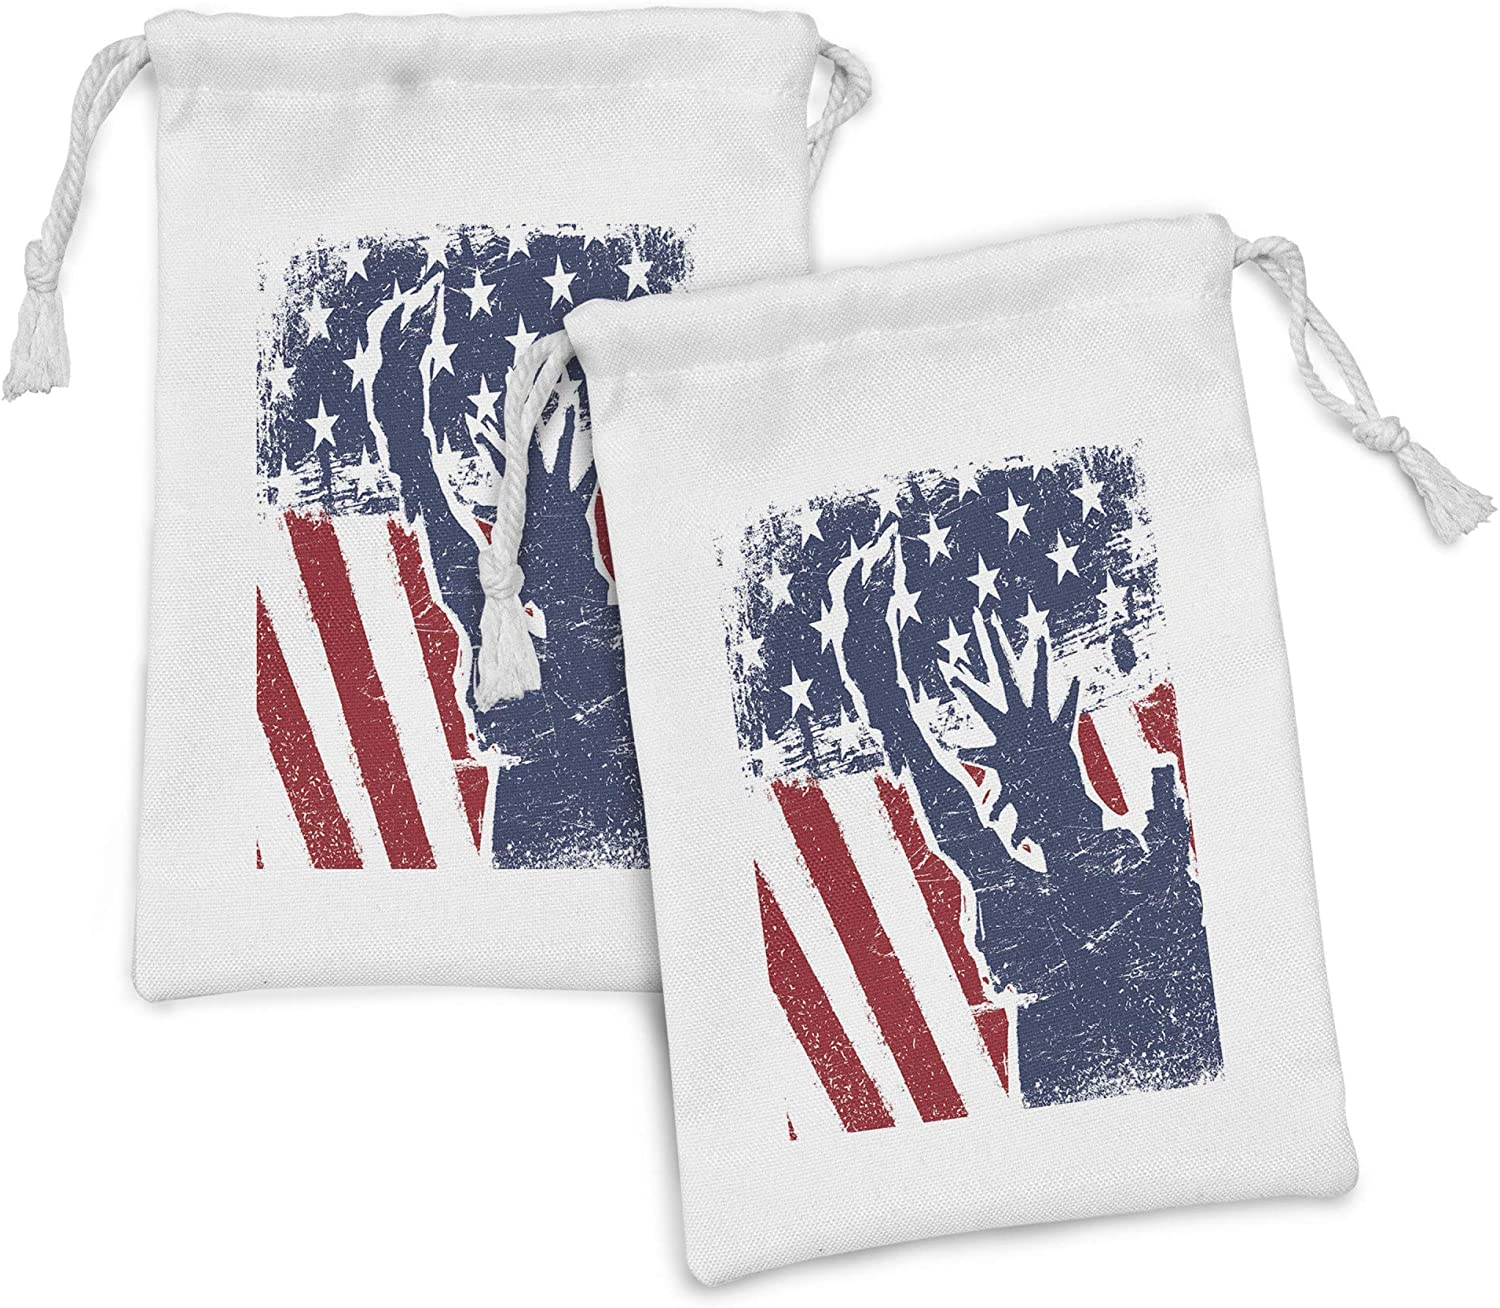 Lunarable American Flag Fabric Pouch Silhouett 2 Seattle Mall of trend rank Set Liberty